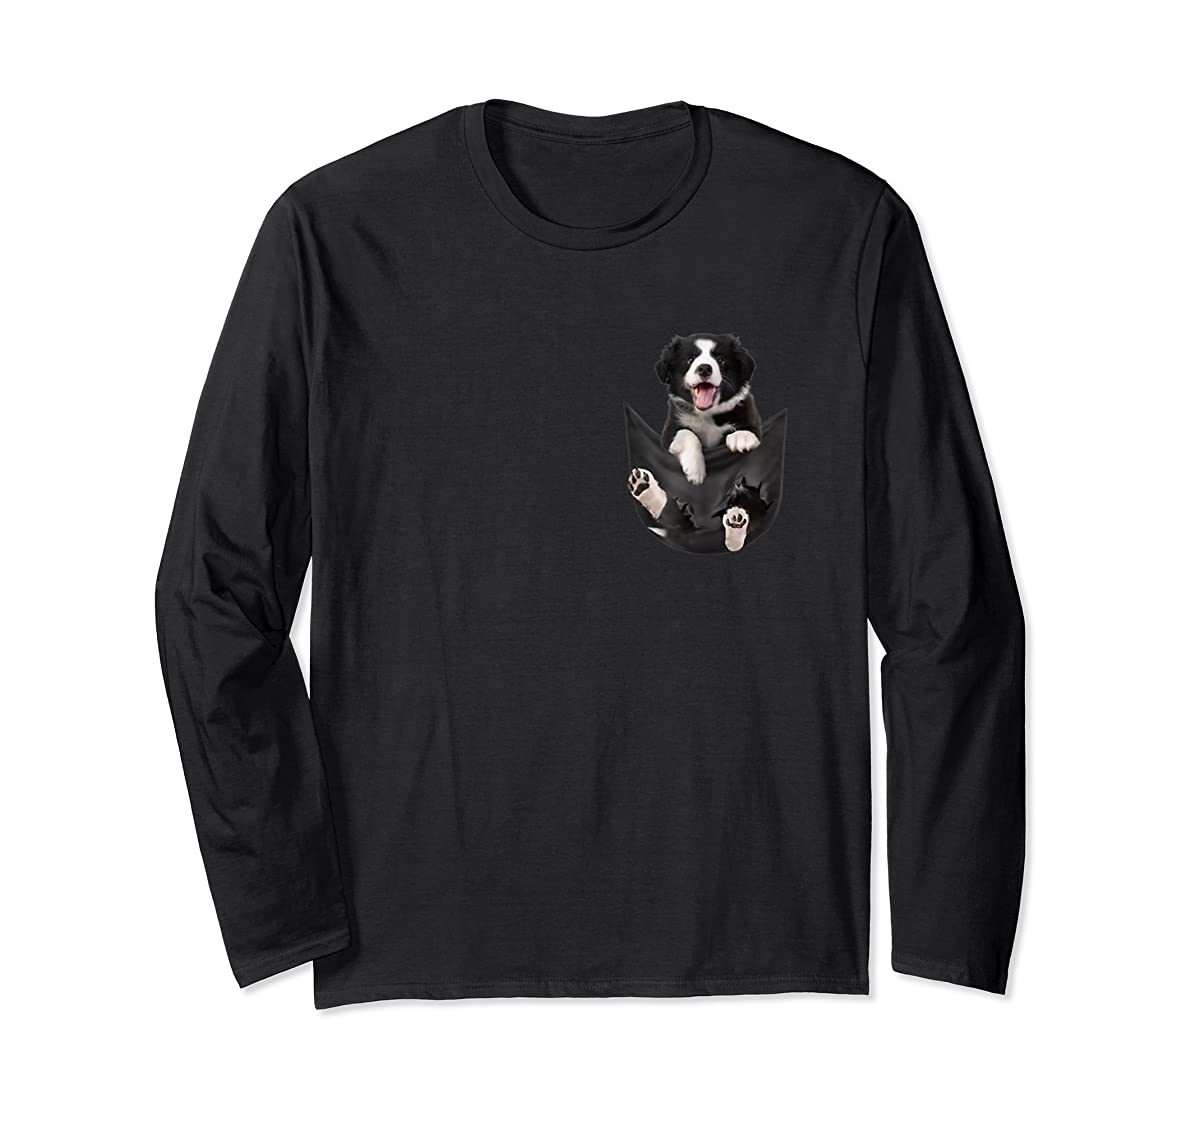 Border Collies Inside In Pocket Dog Lover T shirt Funny Cute-Long Sleeve-Black